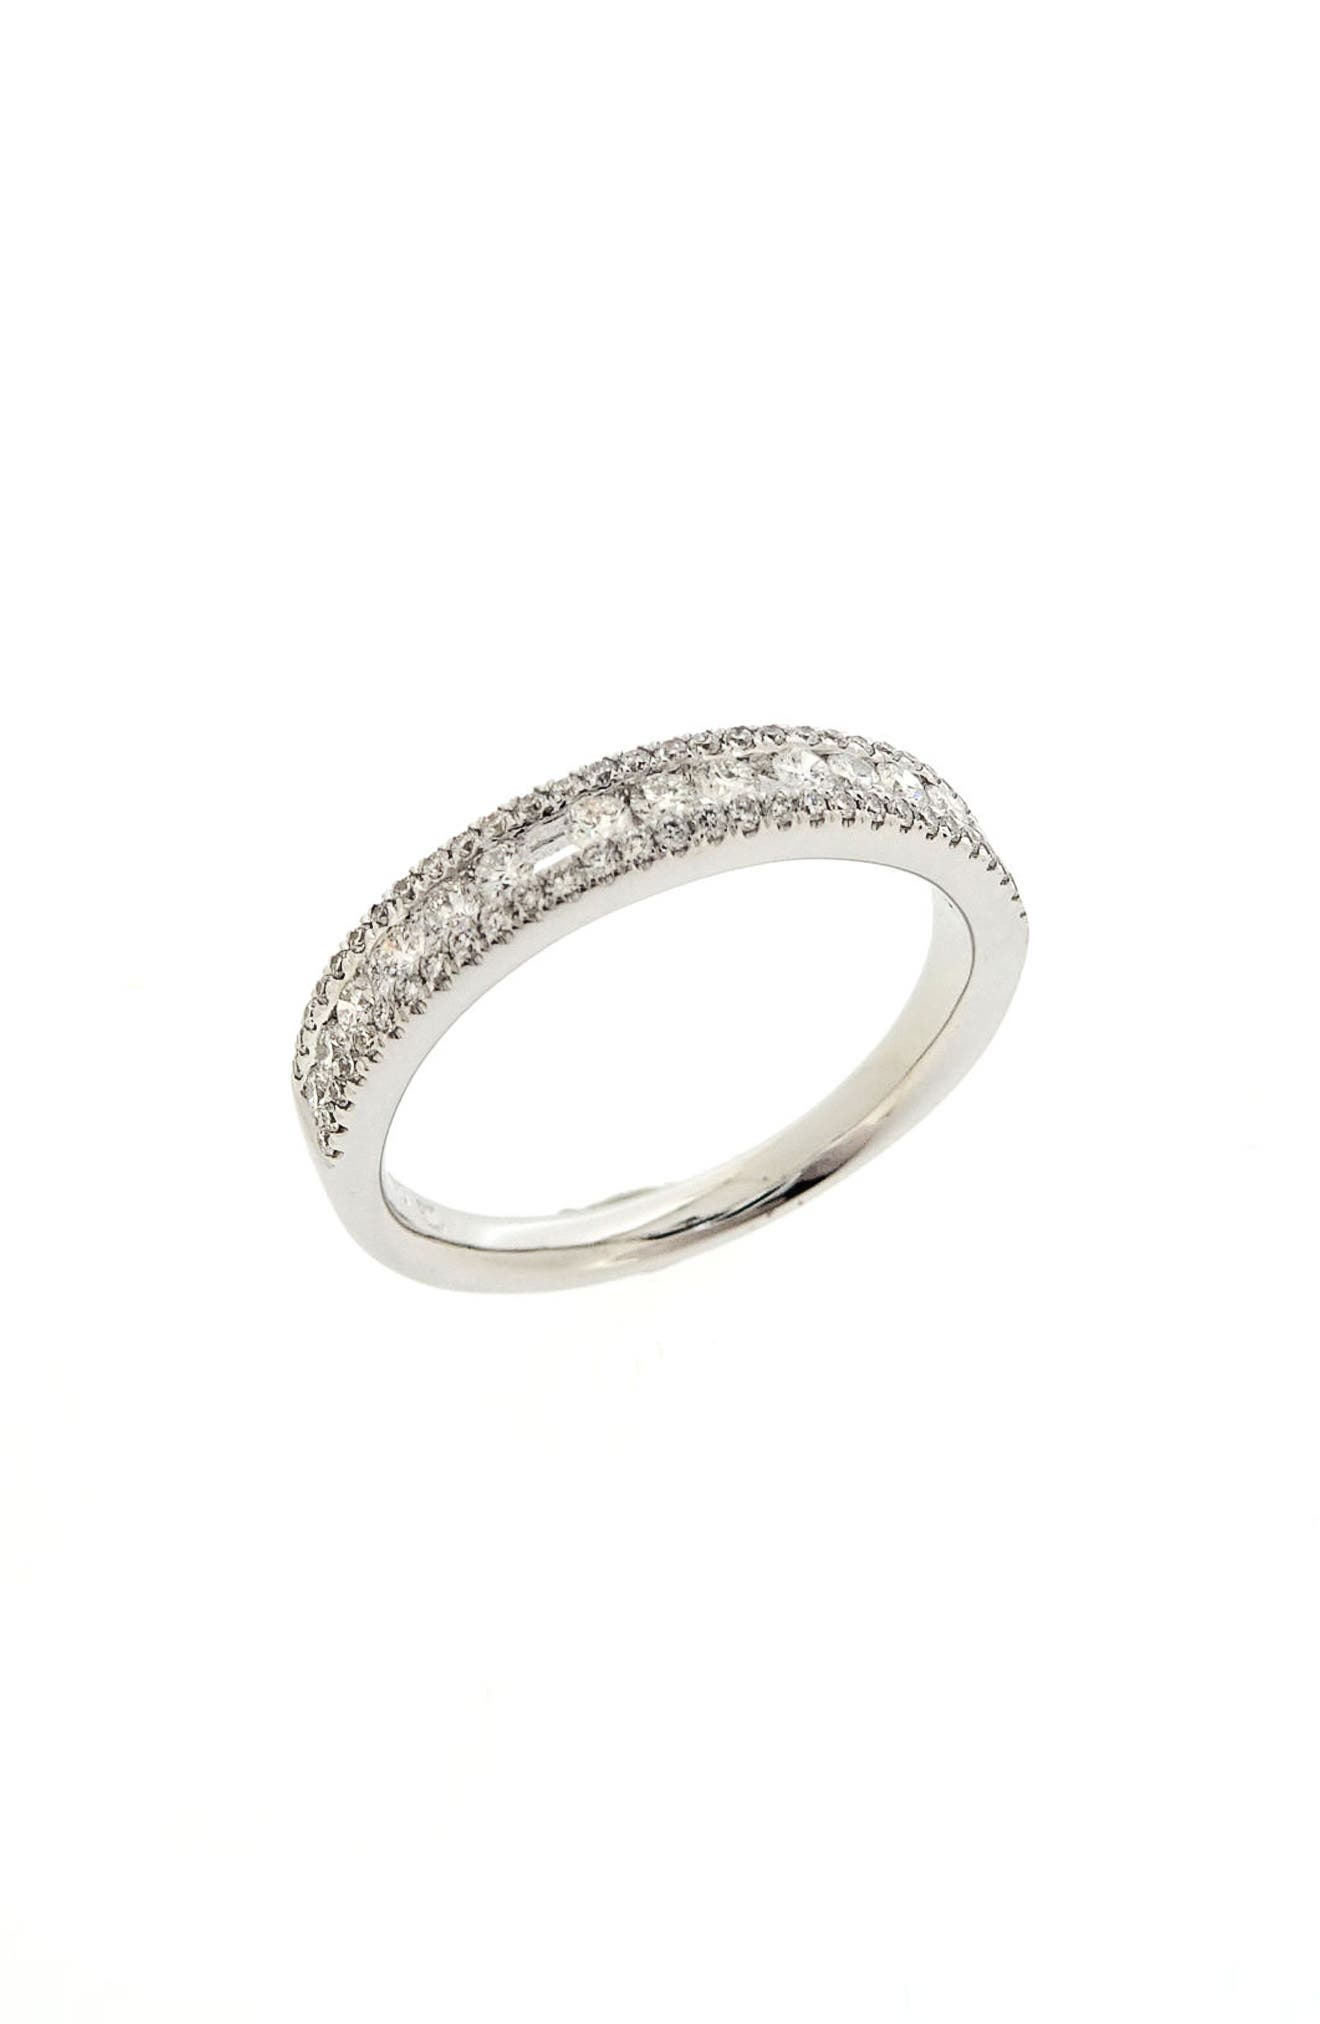 Amara Luxe Stackable Diamond Ring,                         Main,                         color, White Gold